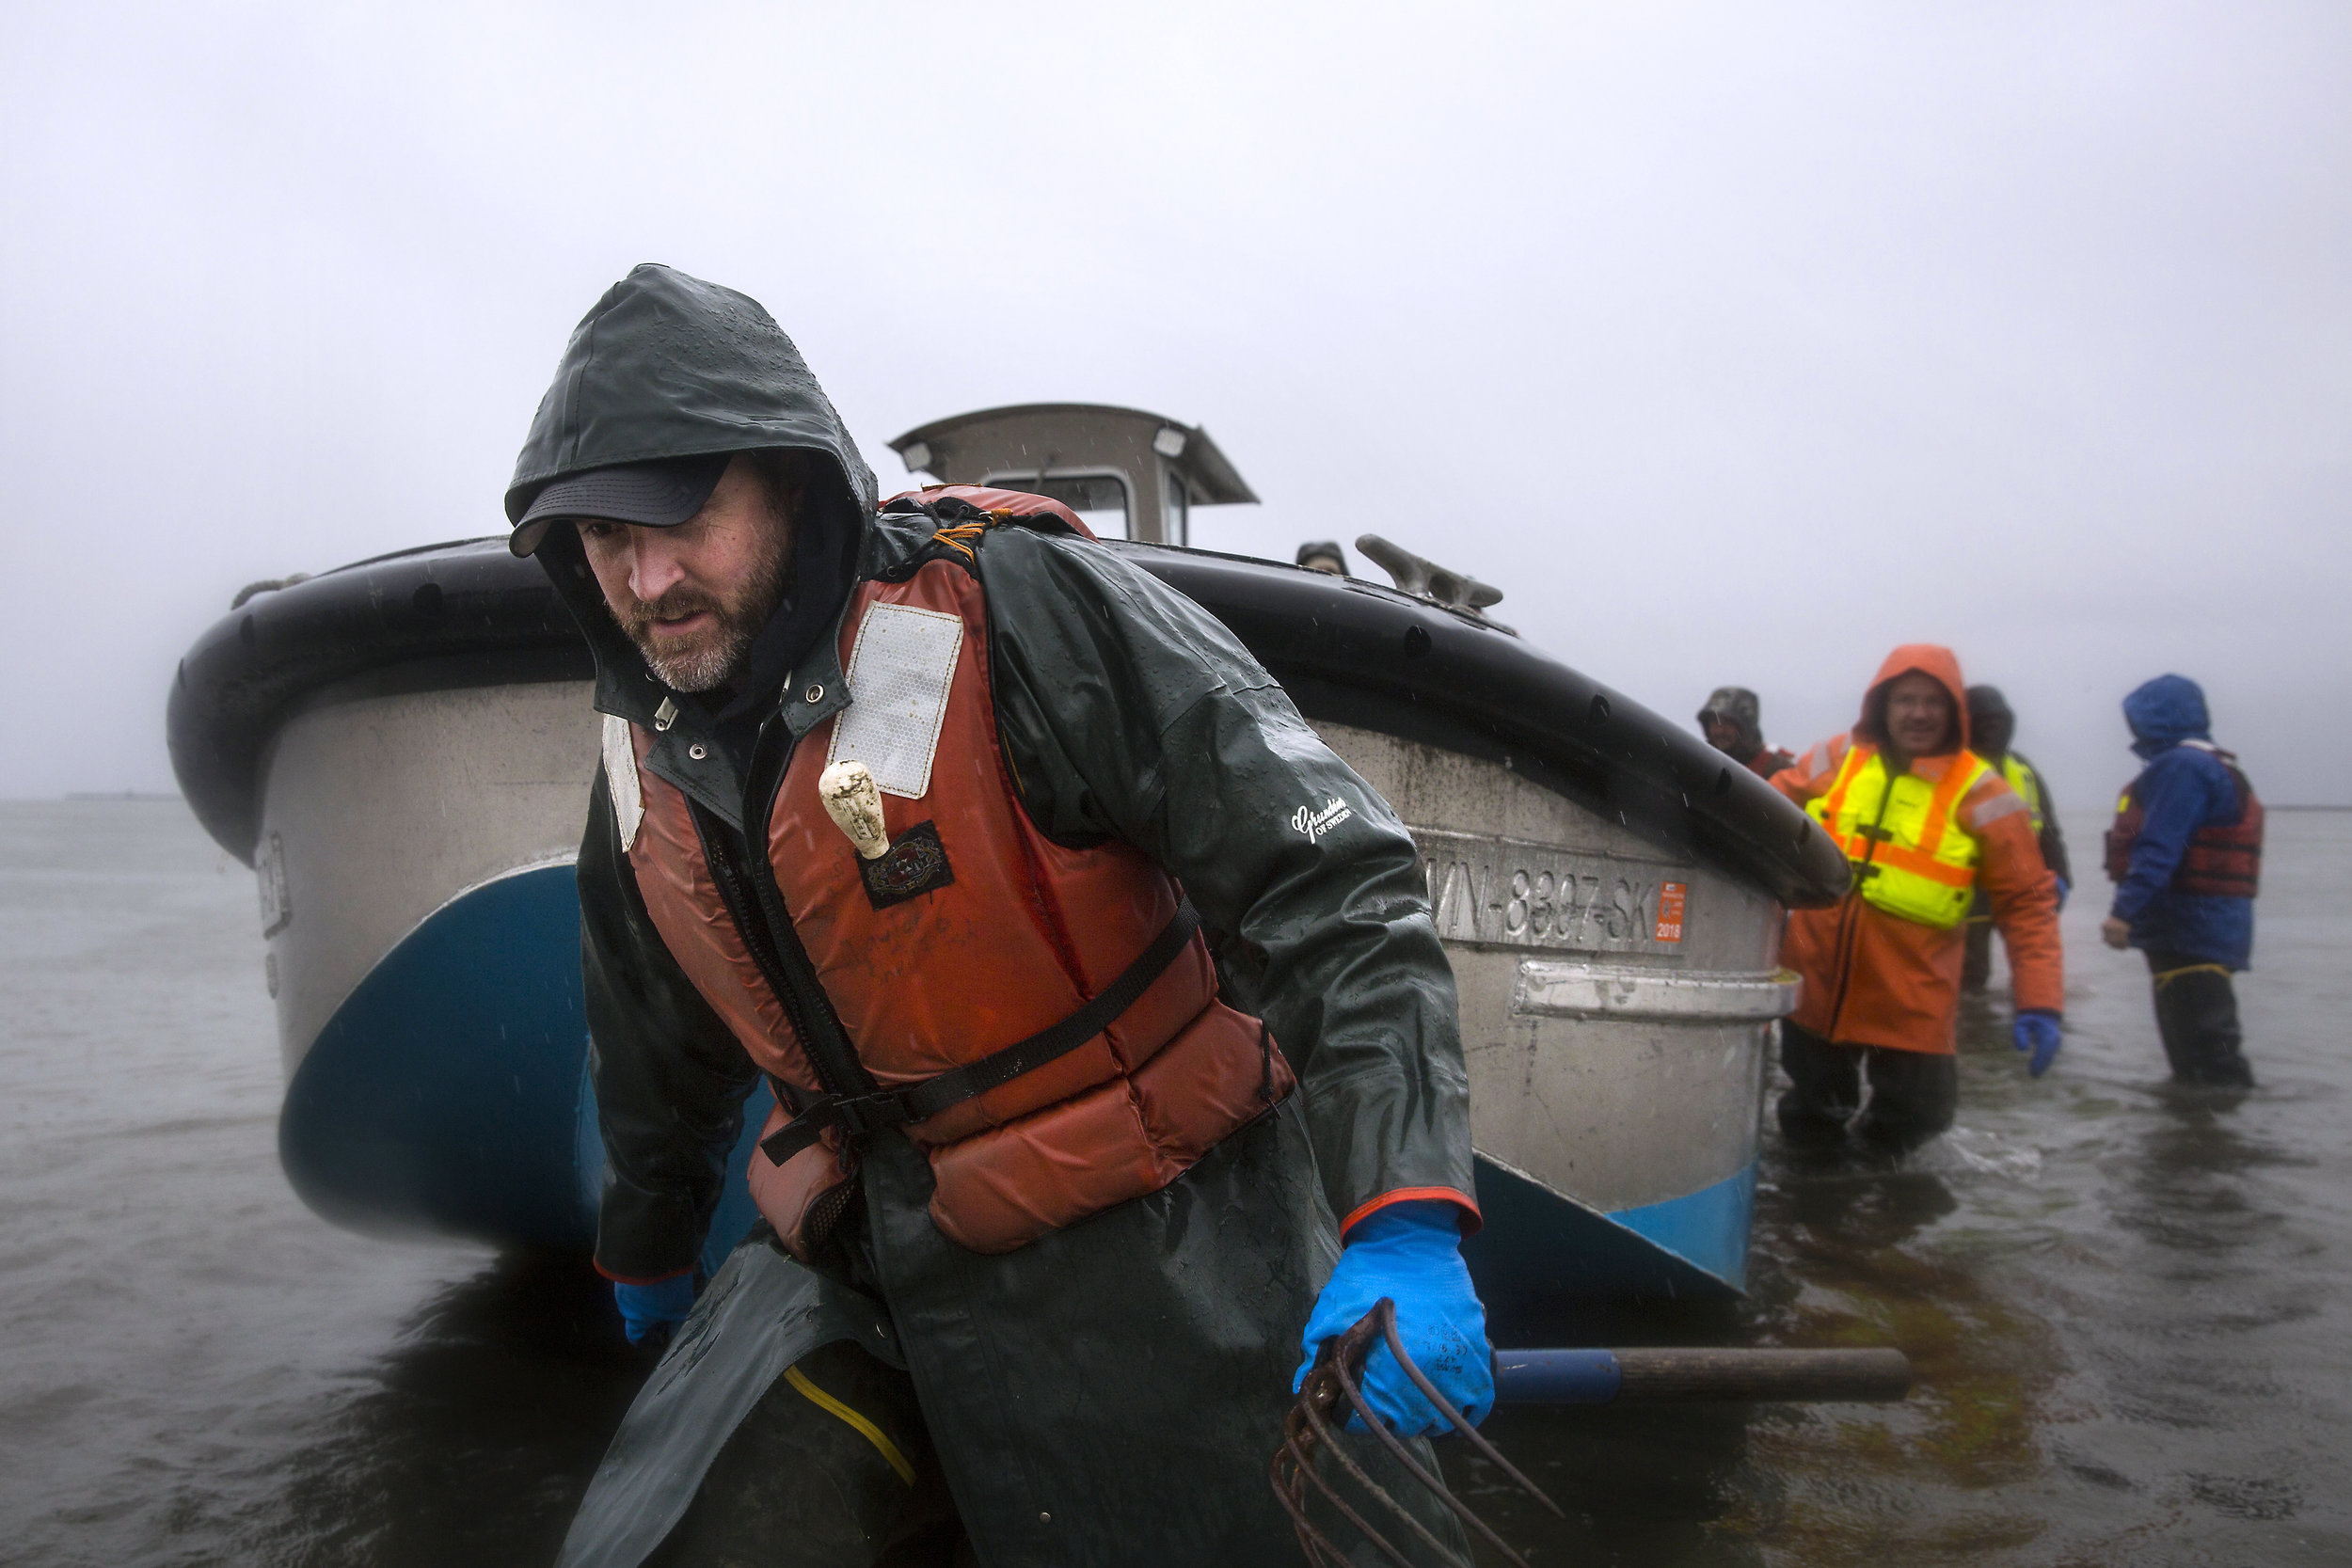 Jason Ragan, director of clam and oyster farming at Taylor Shellfish, pulls a boat in to the shore to take workers on a tour of their Sammish Bay farms, Thursday, March 22, 2018, near Bellingham. (Sy Bean / Seattle Refined)